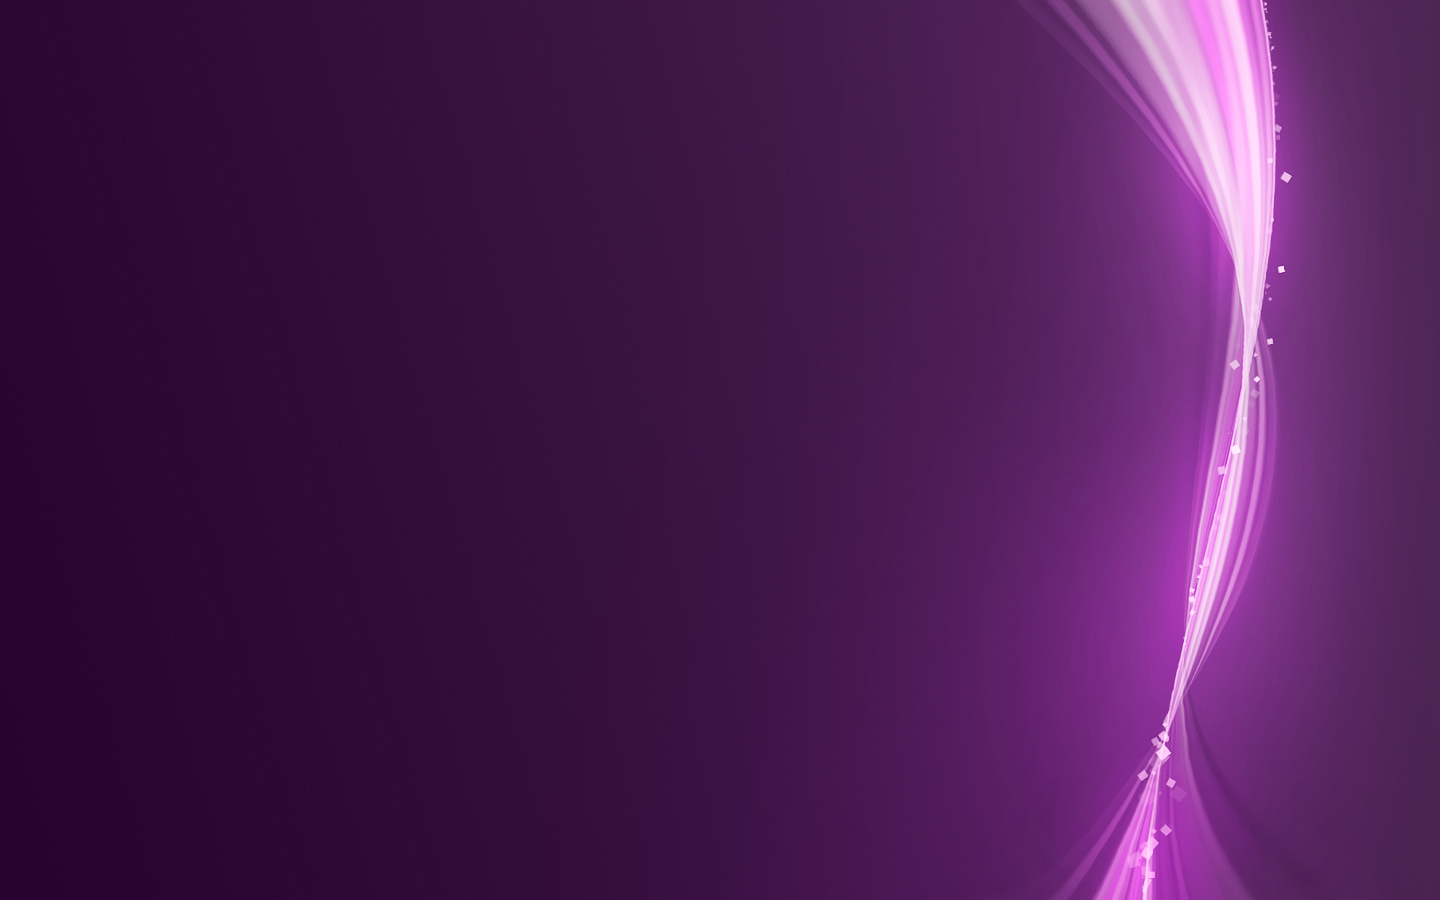 free purple abstract wallpaper 27707